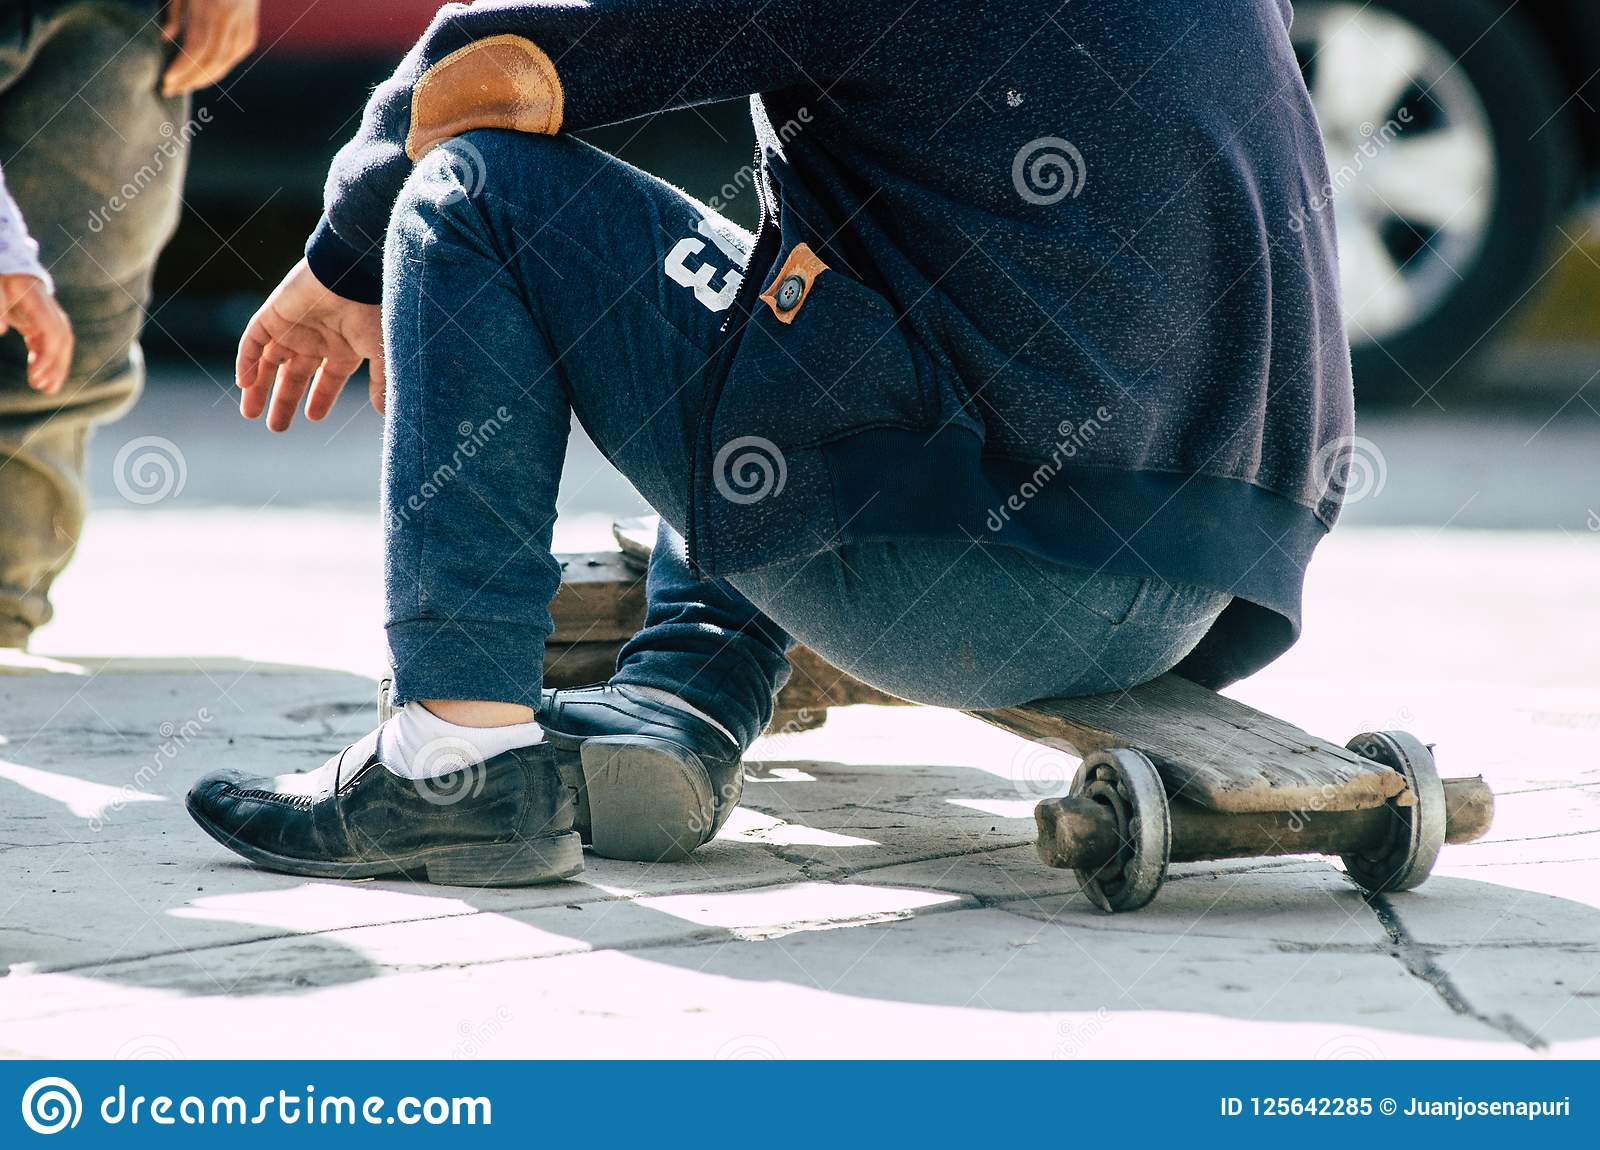 Child playing on the street with a handmade skateboard